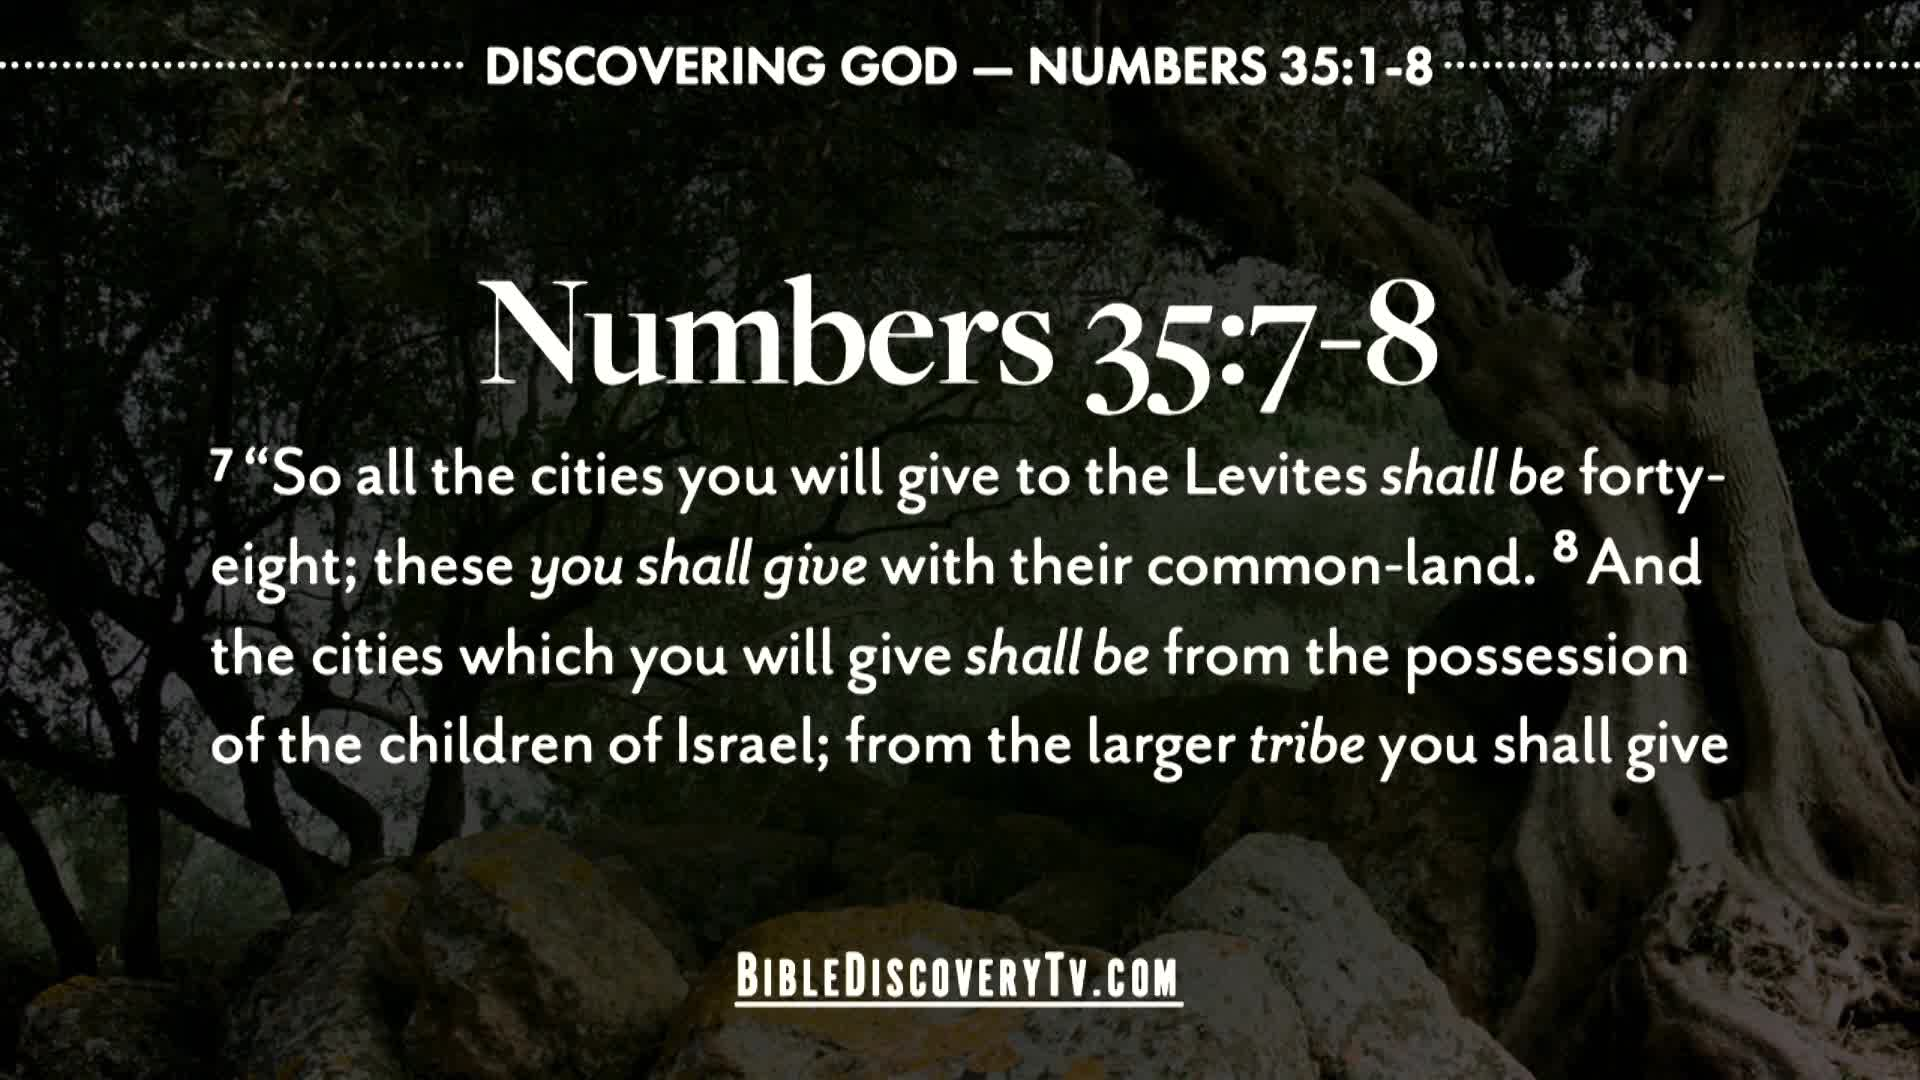 Bible Discovery - Numbers 35 Cities of the Levites